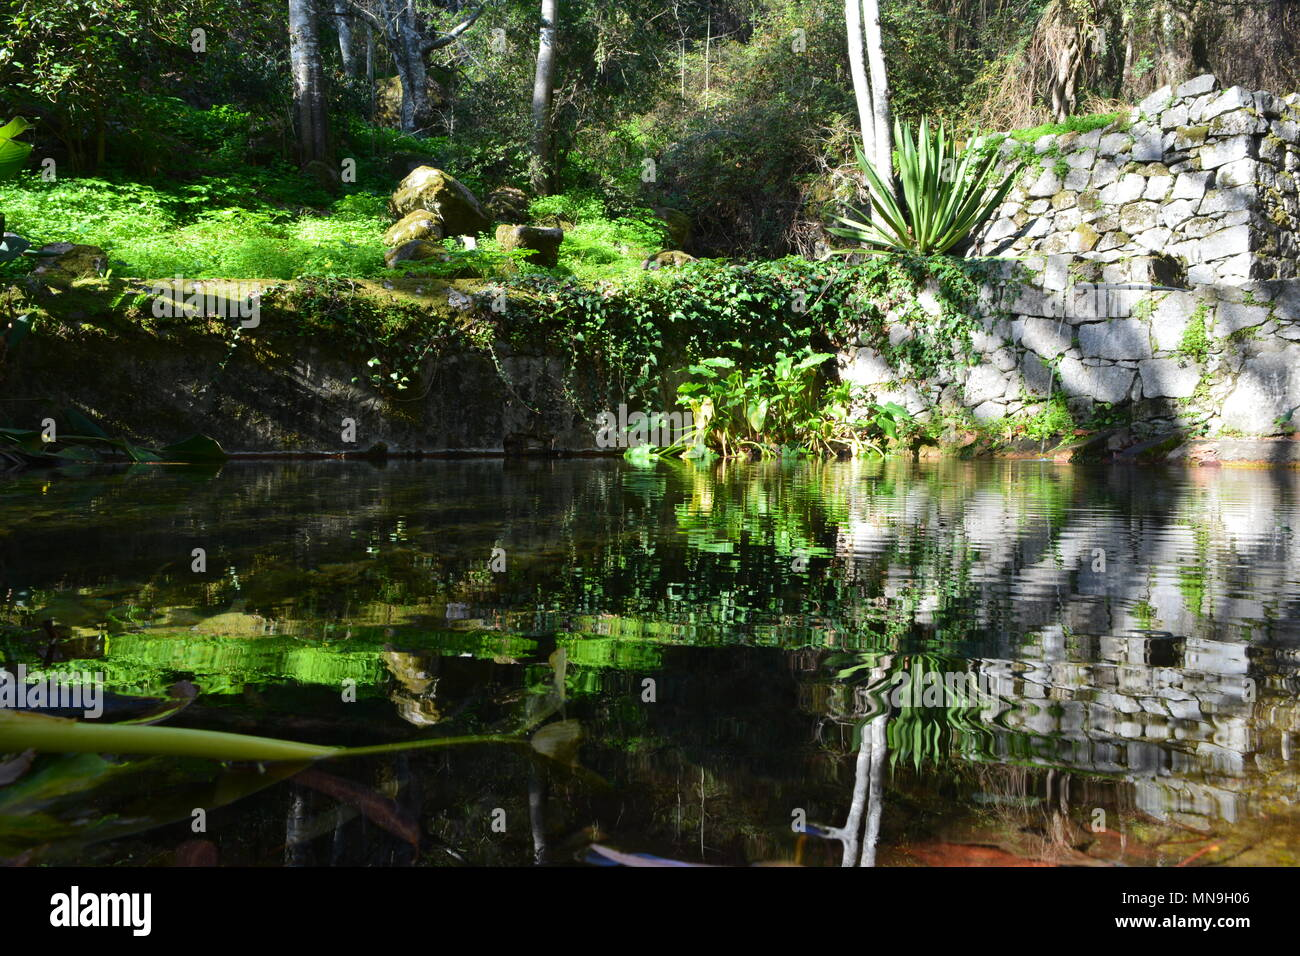 Luscious, green vegetation and ripples on a natural spring pool in Caldas de Monchique in the Algarve, southern Portugal Stock Photo